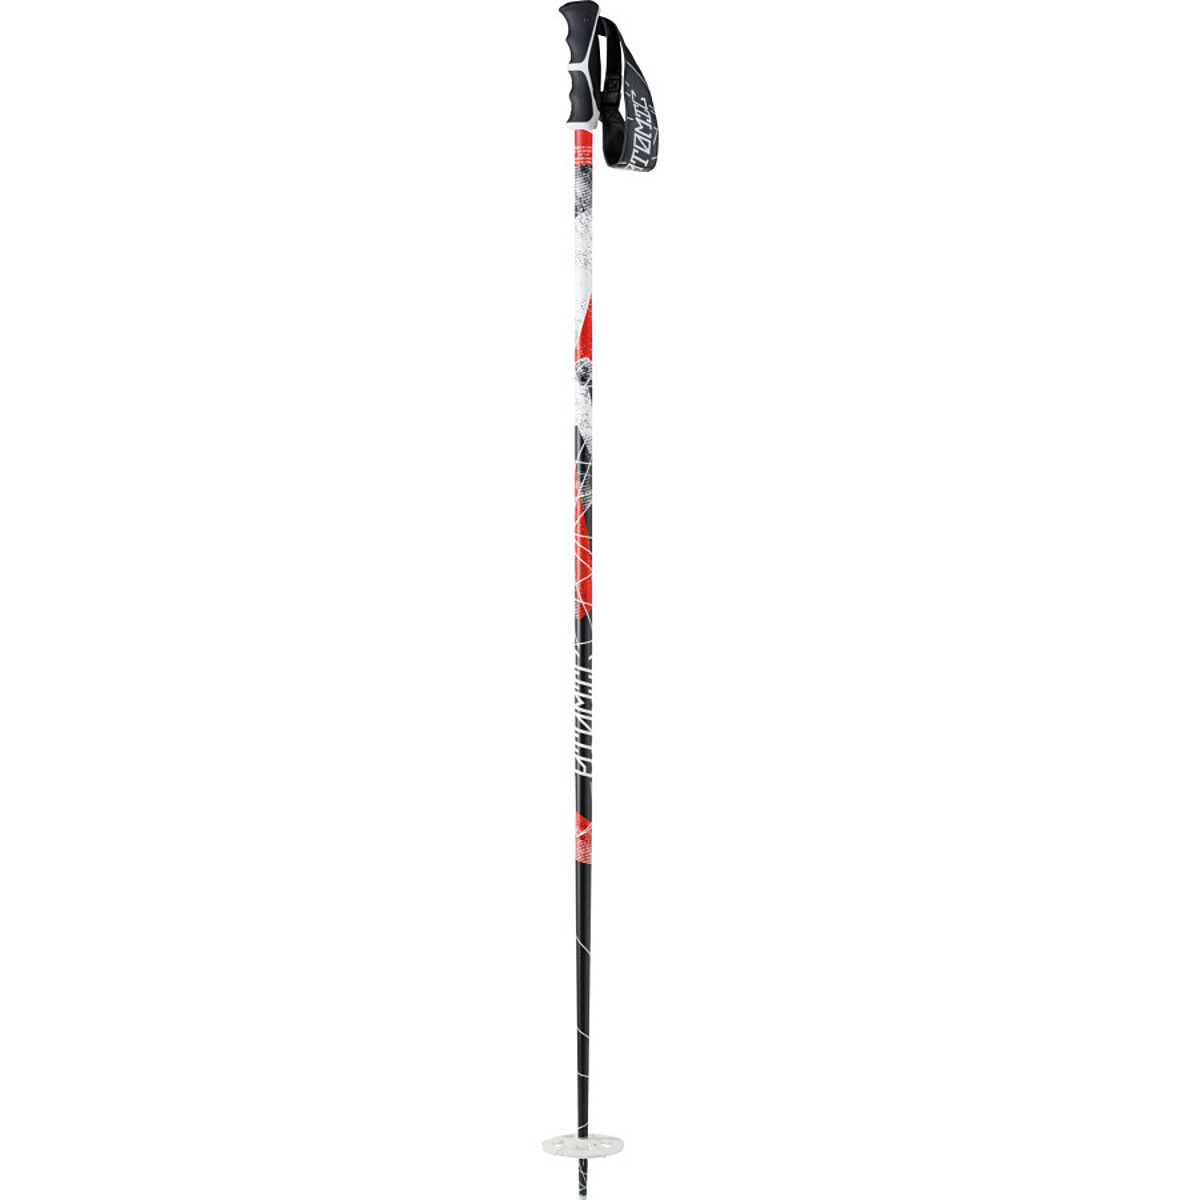 Atomic Powder Ski Pole